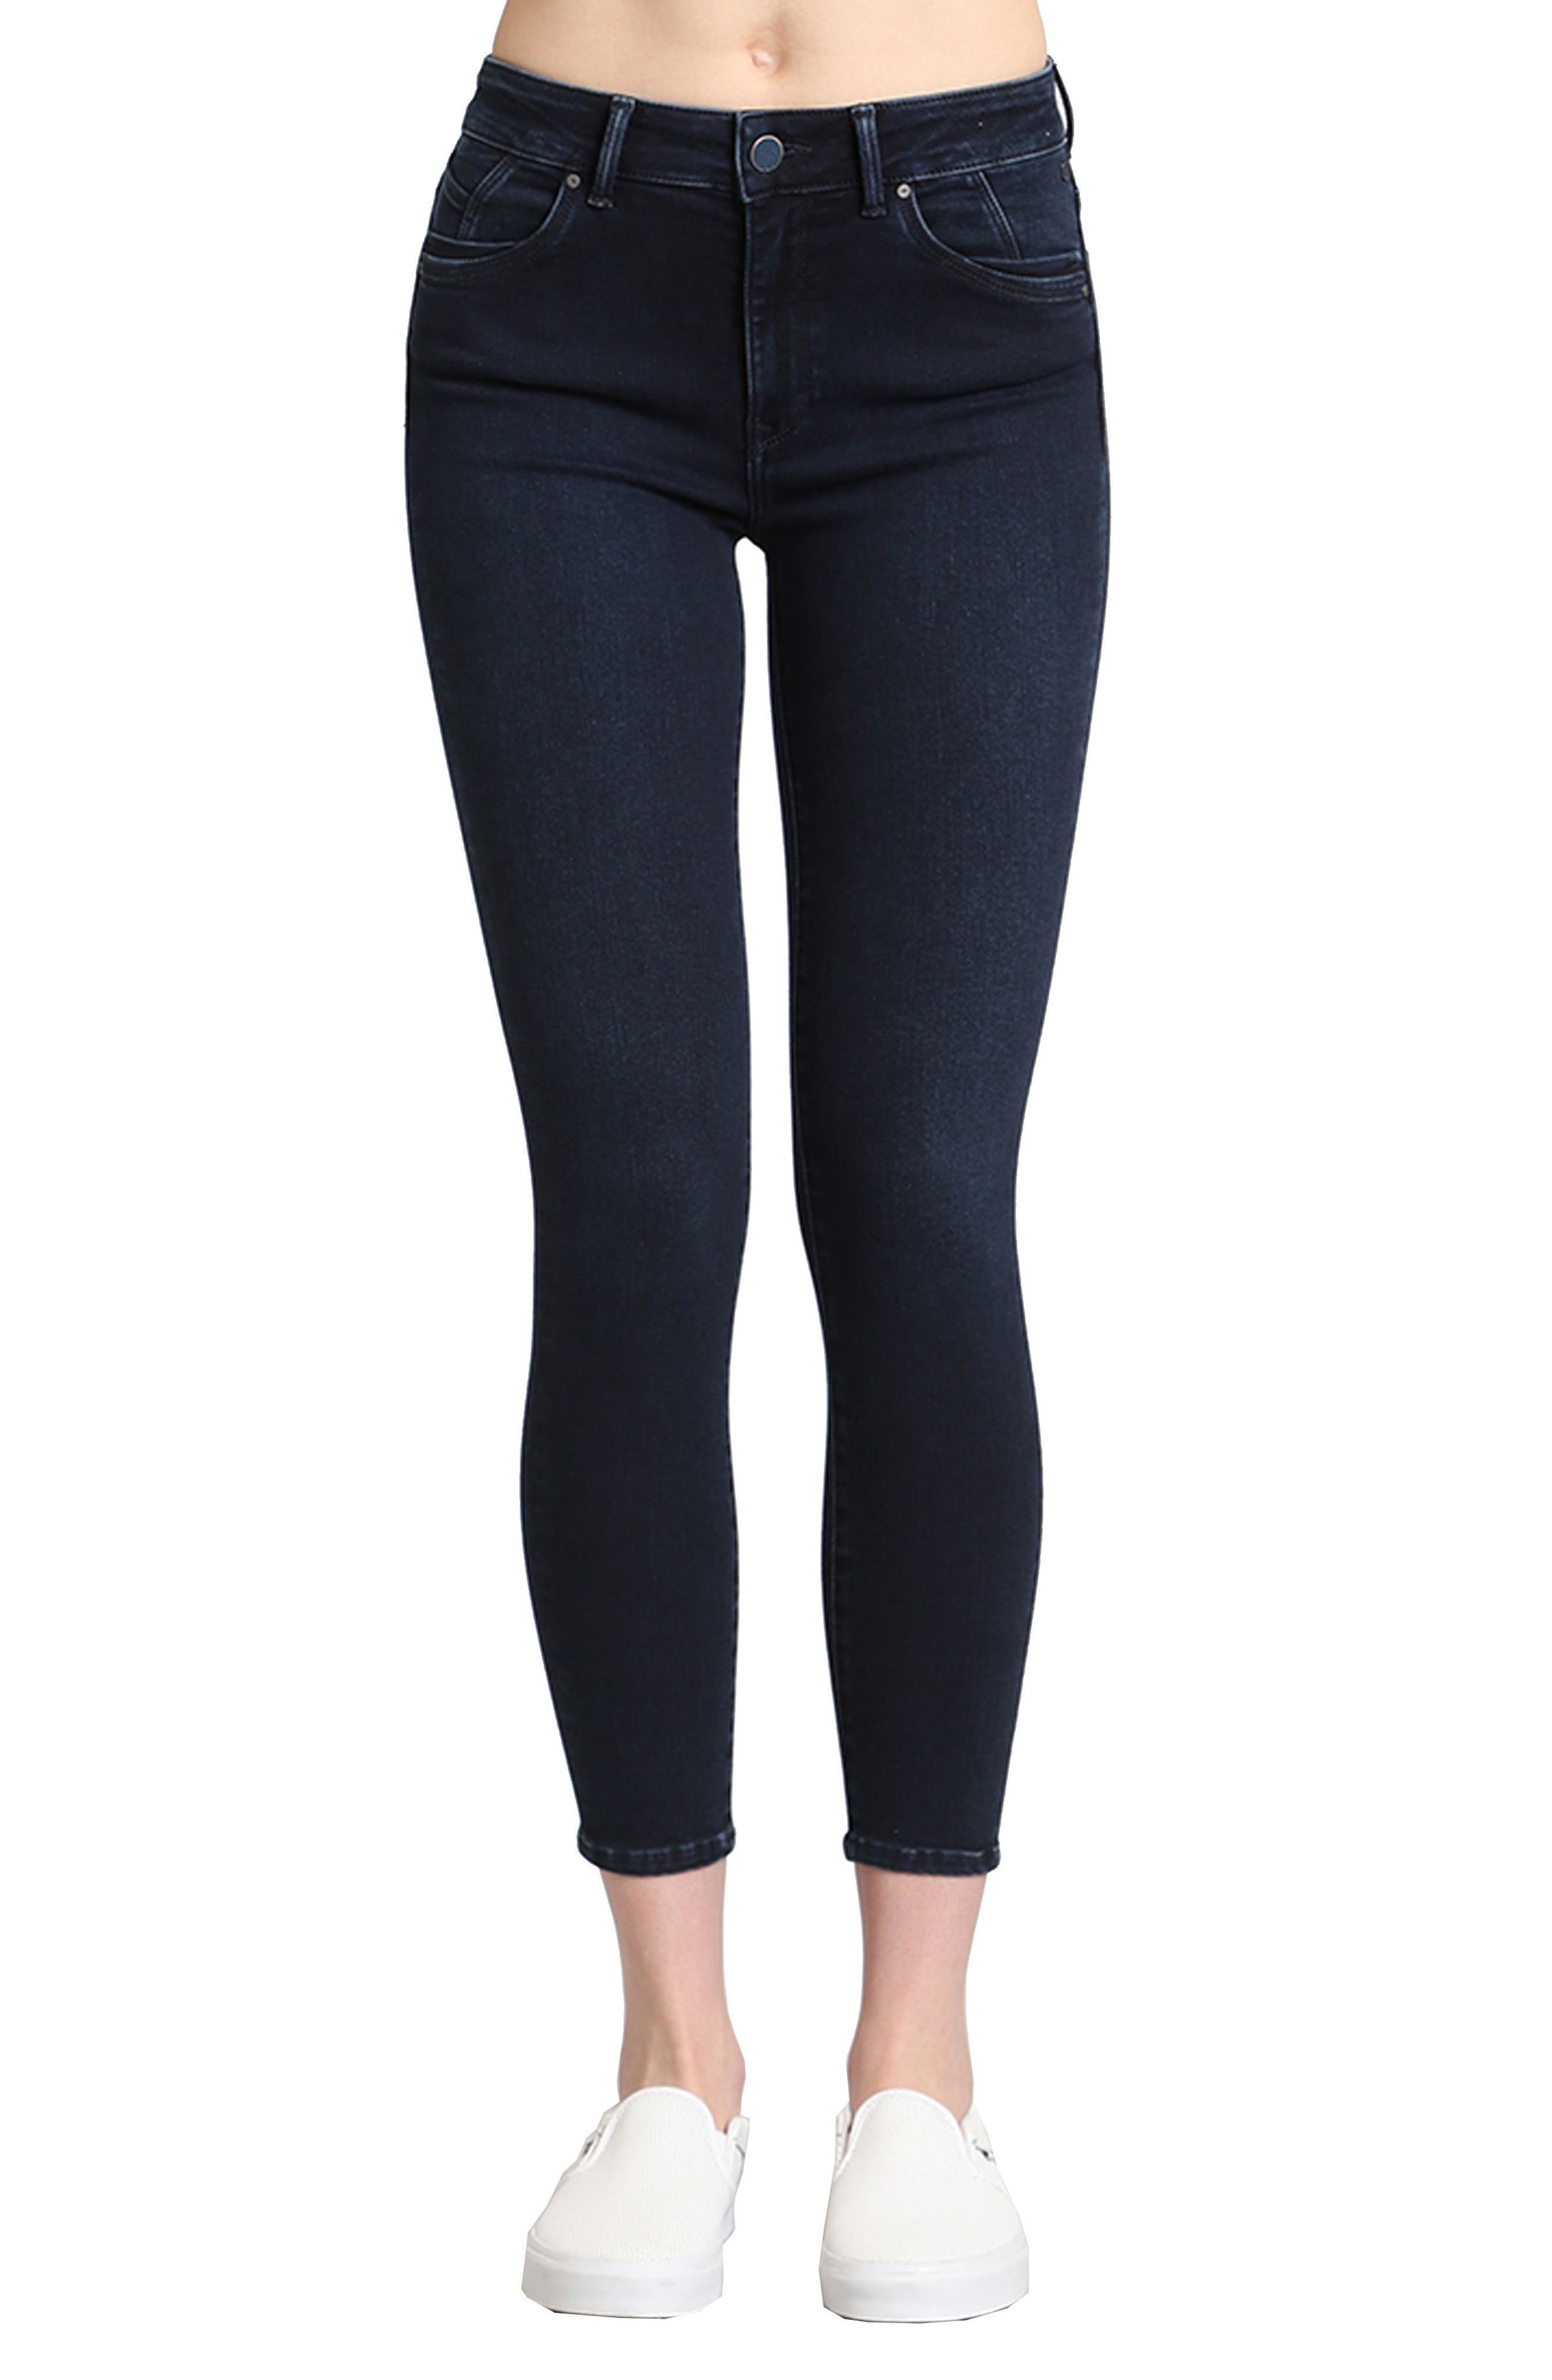 Tess Stretch Ankle Skinny Jeans,                         Main,                         color, Ink Brushed Indigo Move